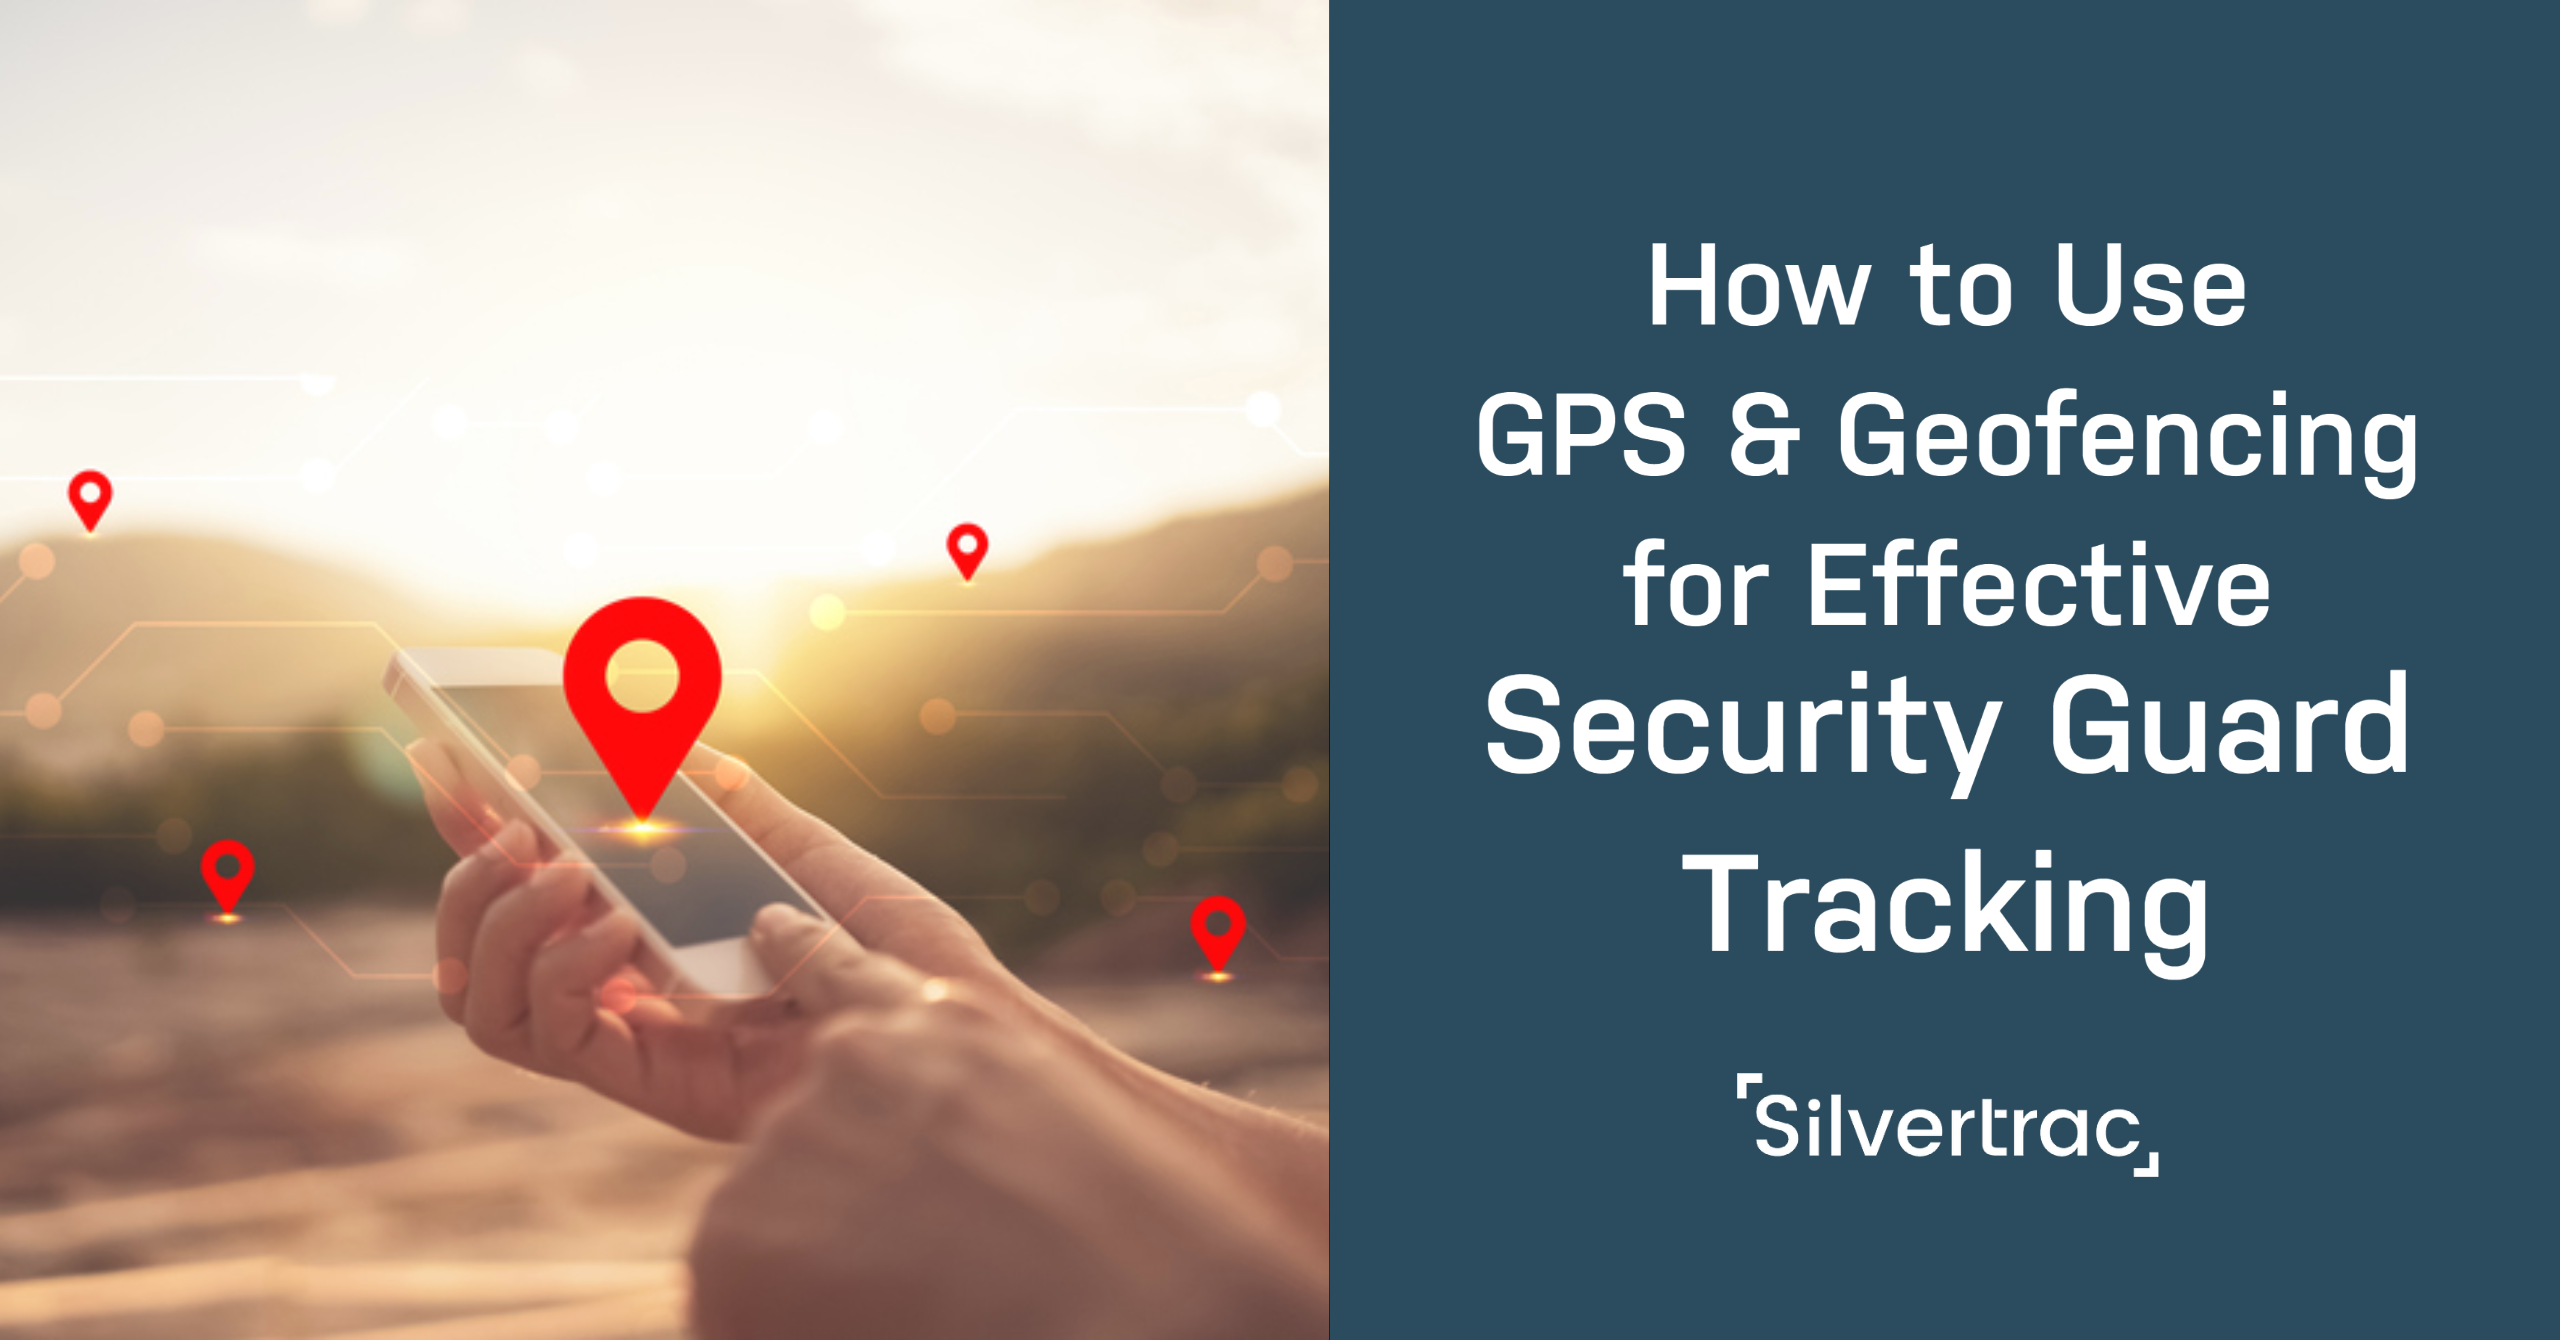 How to Use GPS and Geofencing for Effective Security Guard Tracking